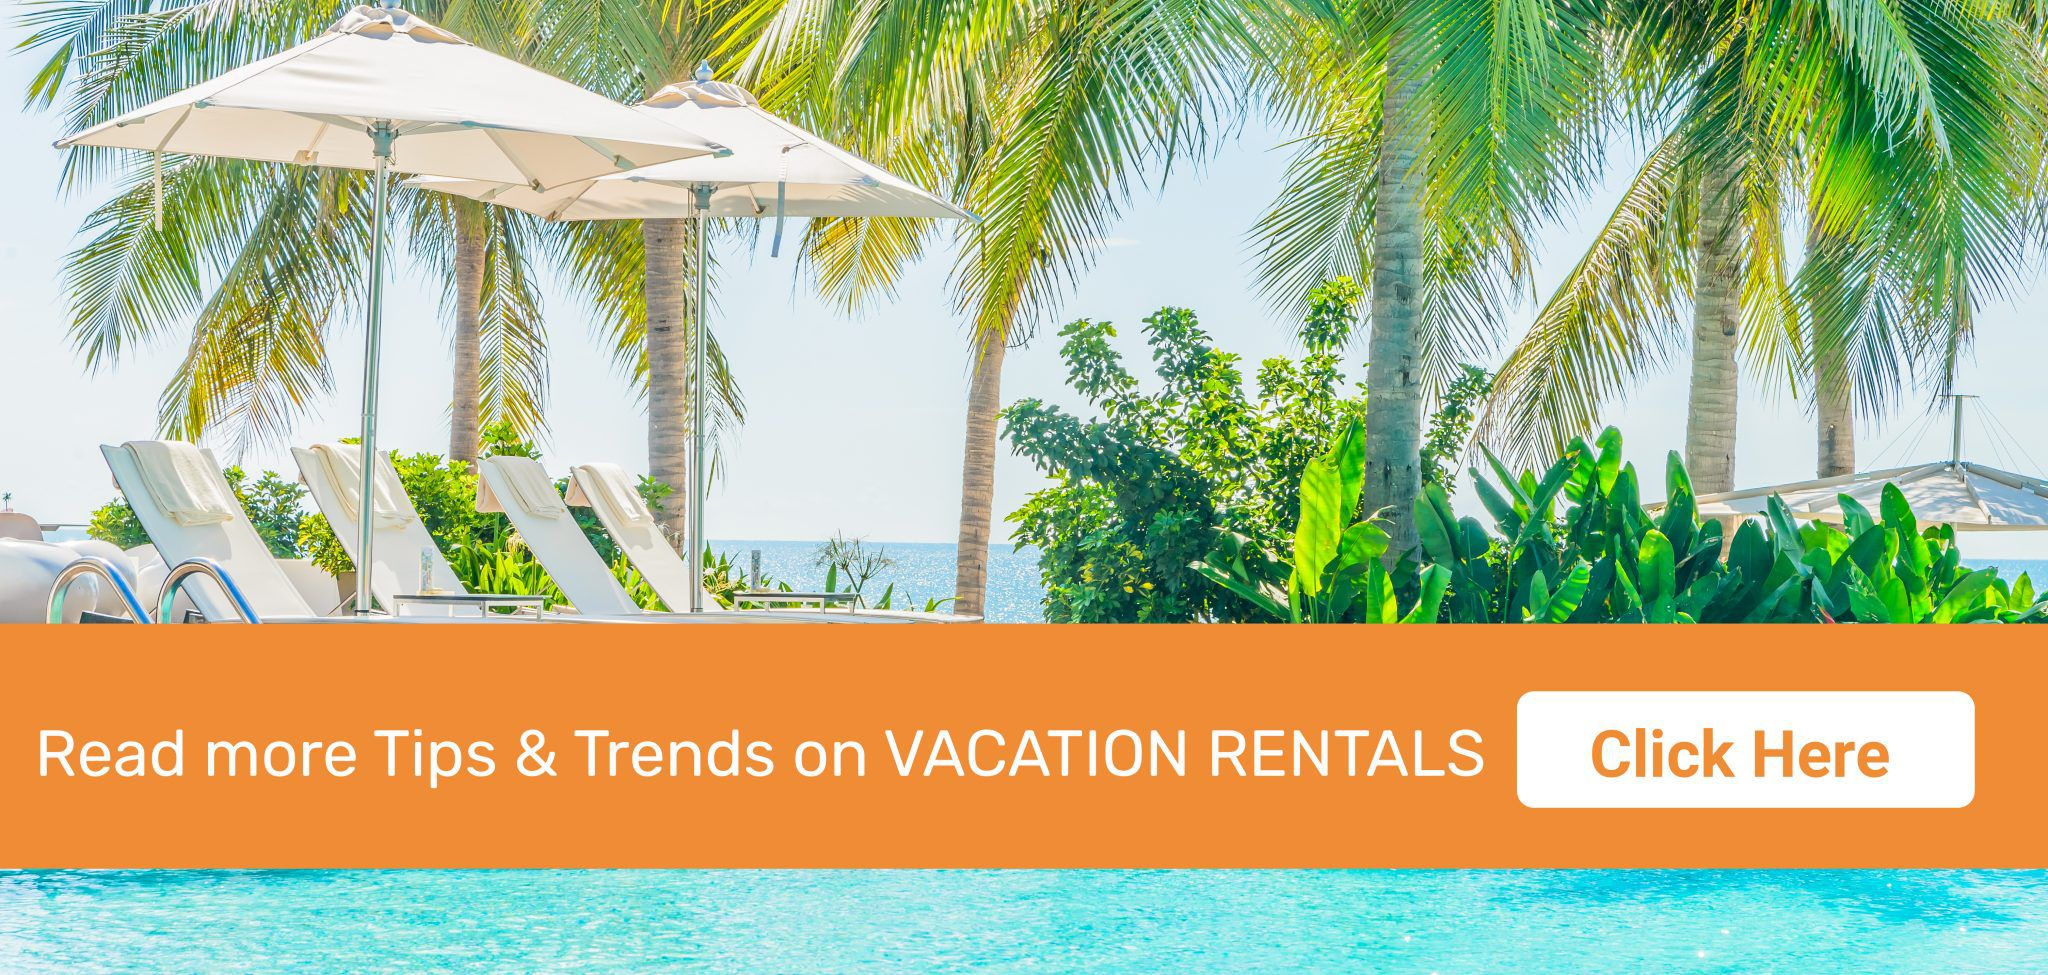 Vacation Rental Industry